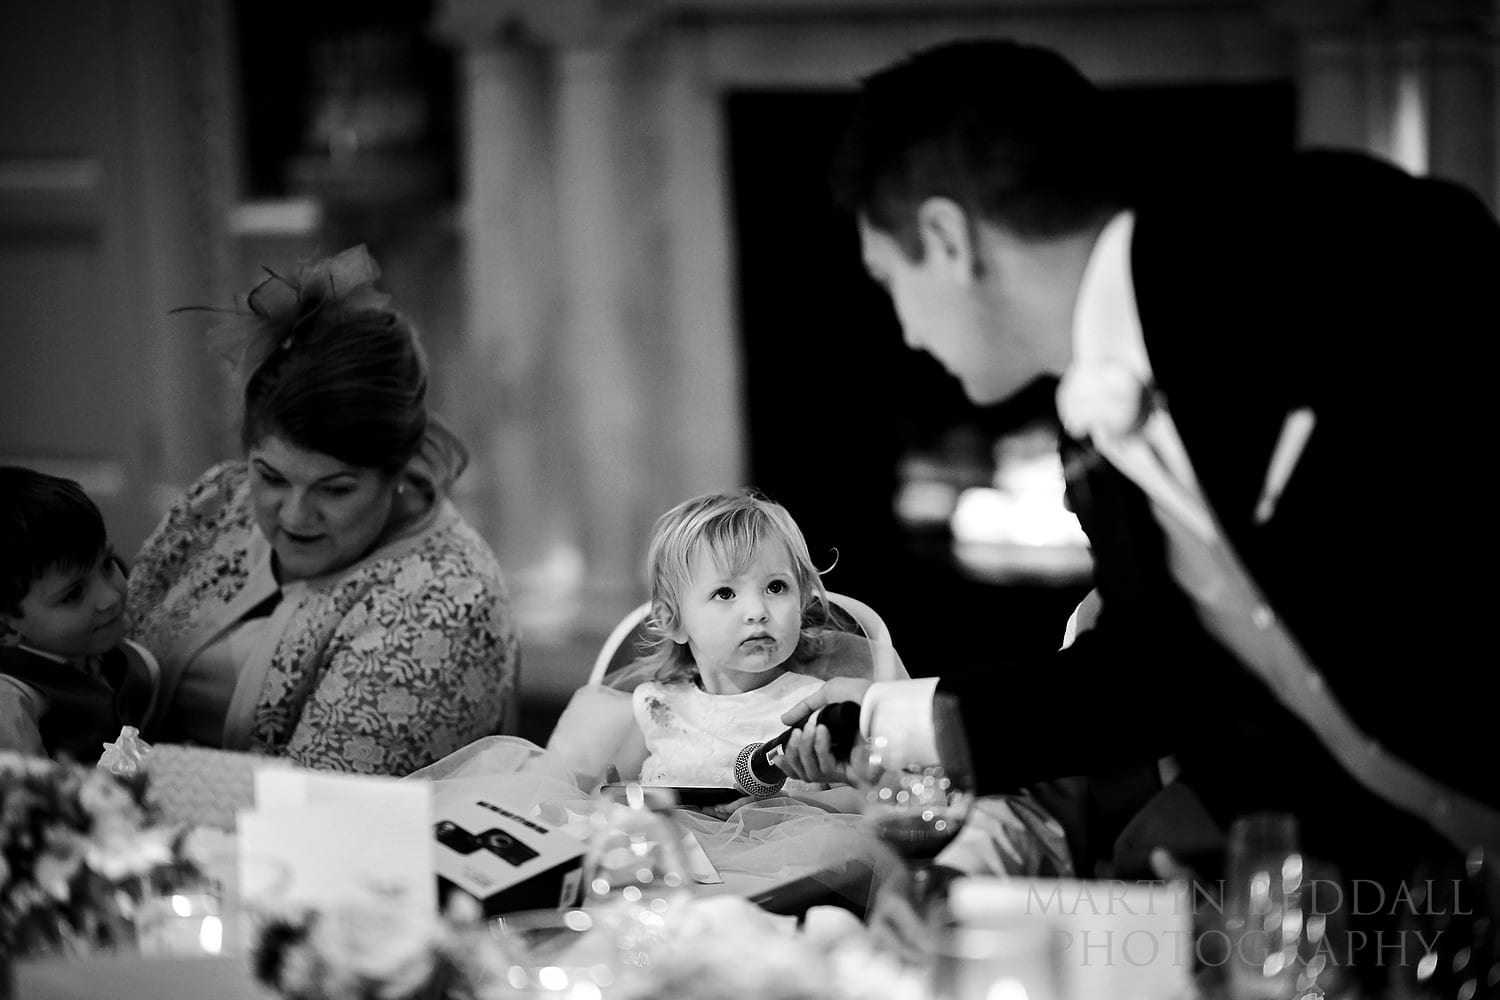 Giving her uncle a 'look'